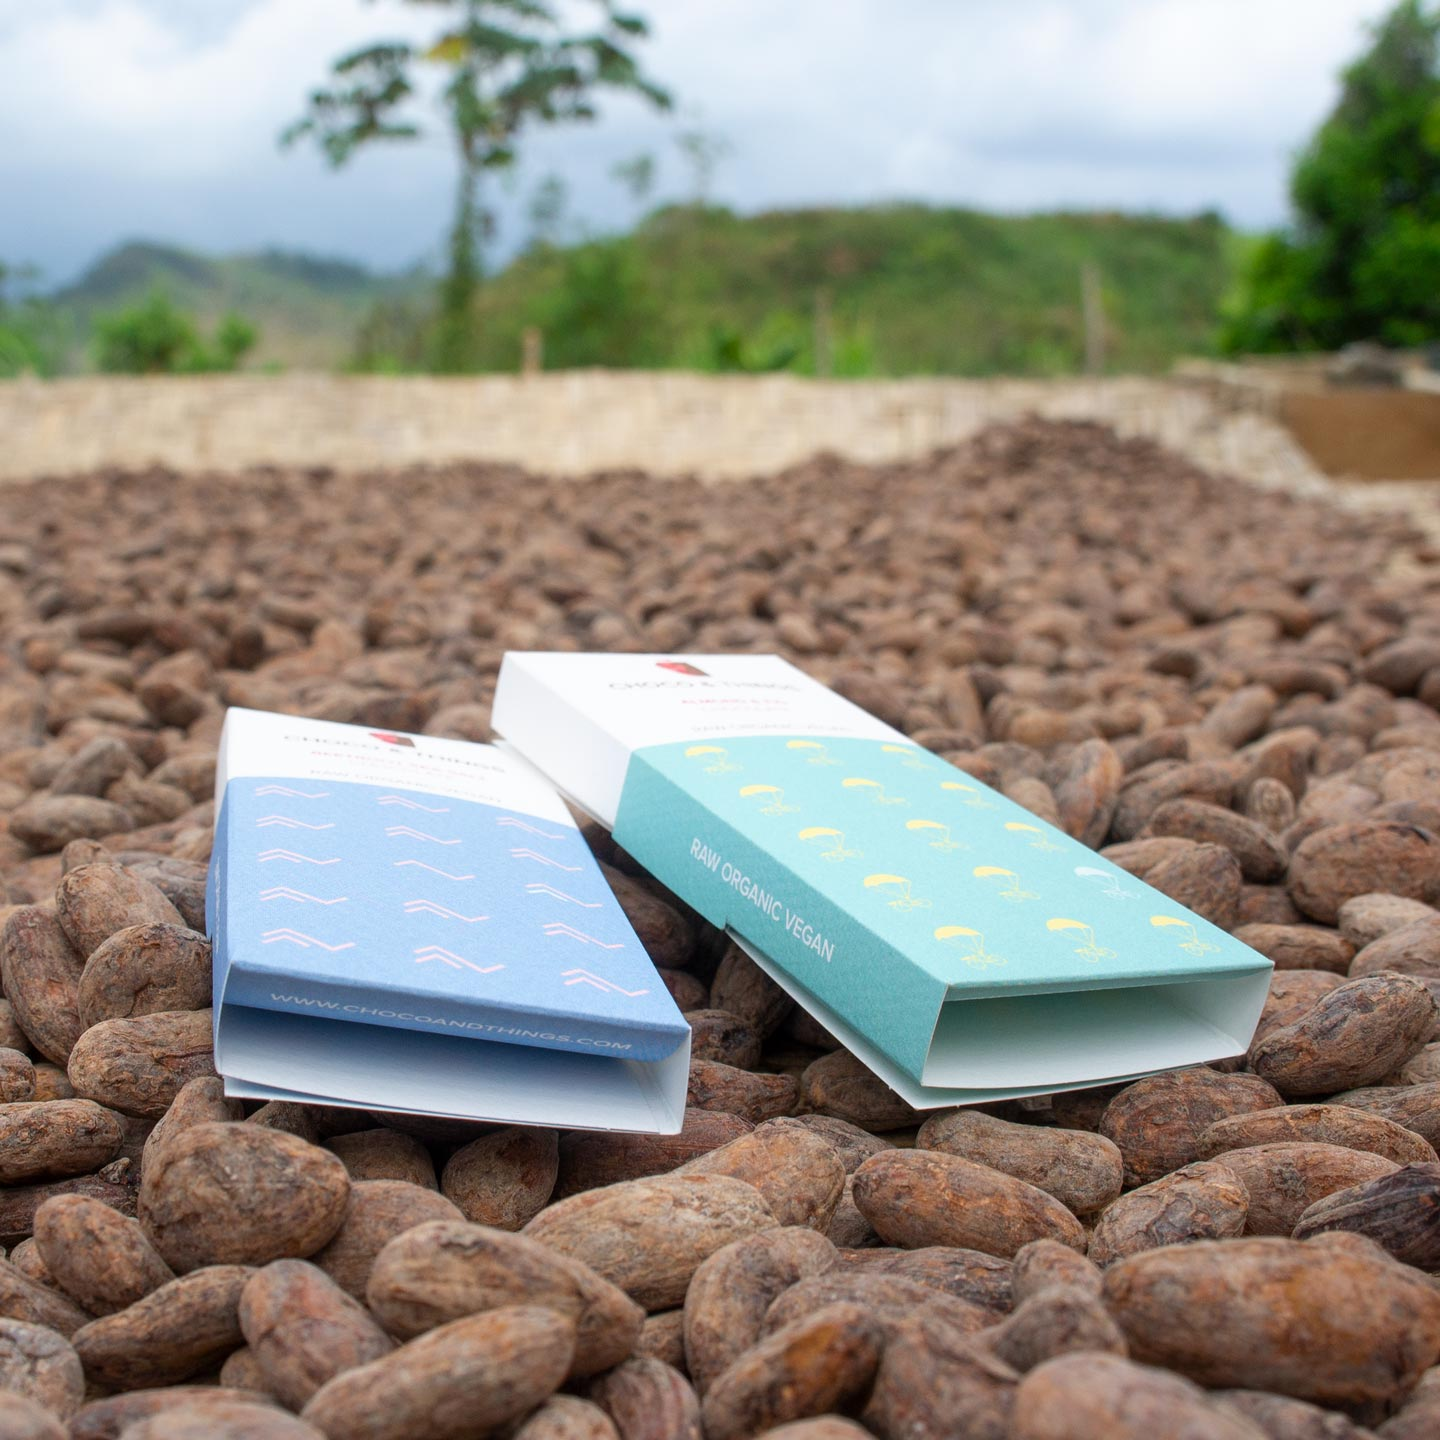 Vegan chocolate on raw cacao beans.